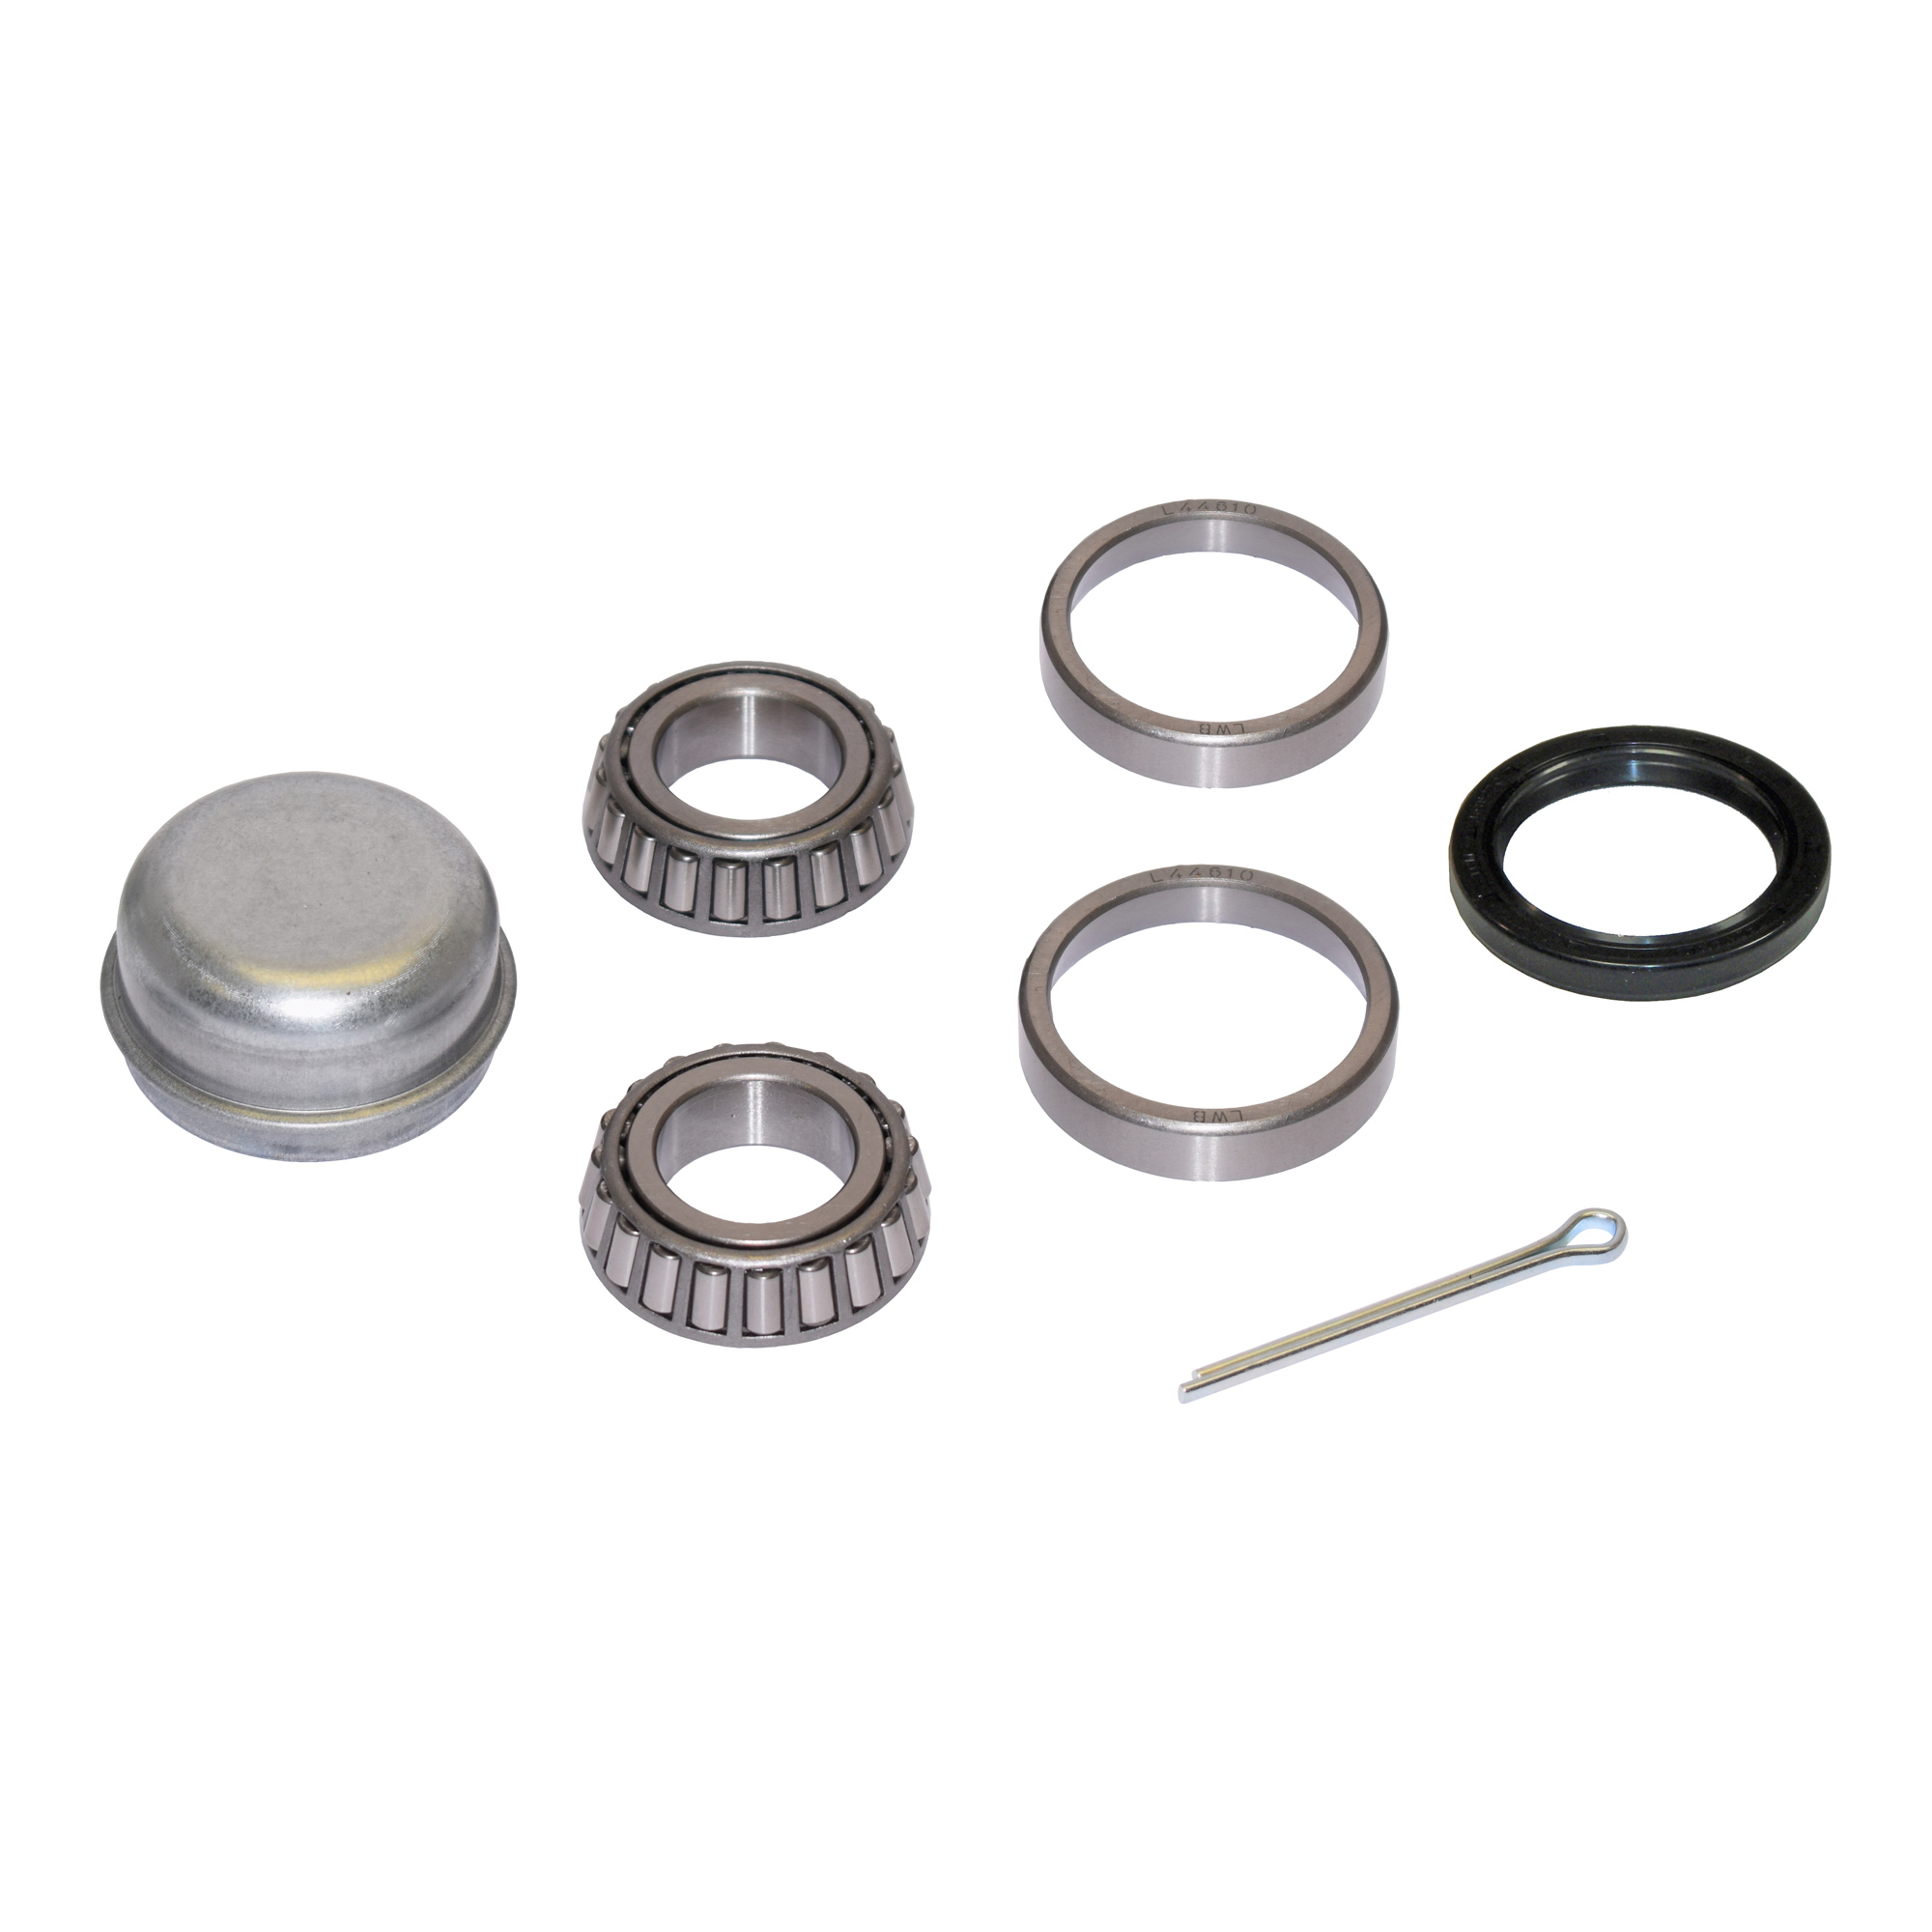 Trailer Bearing Repair Kit For 1-1/16 Inch Straight Spindle